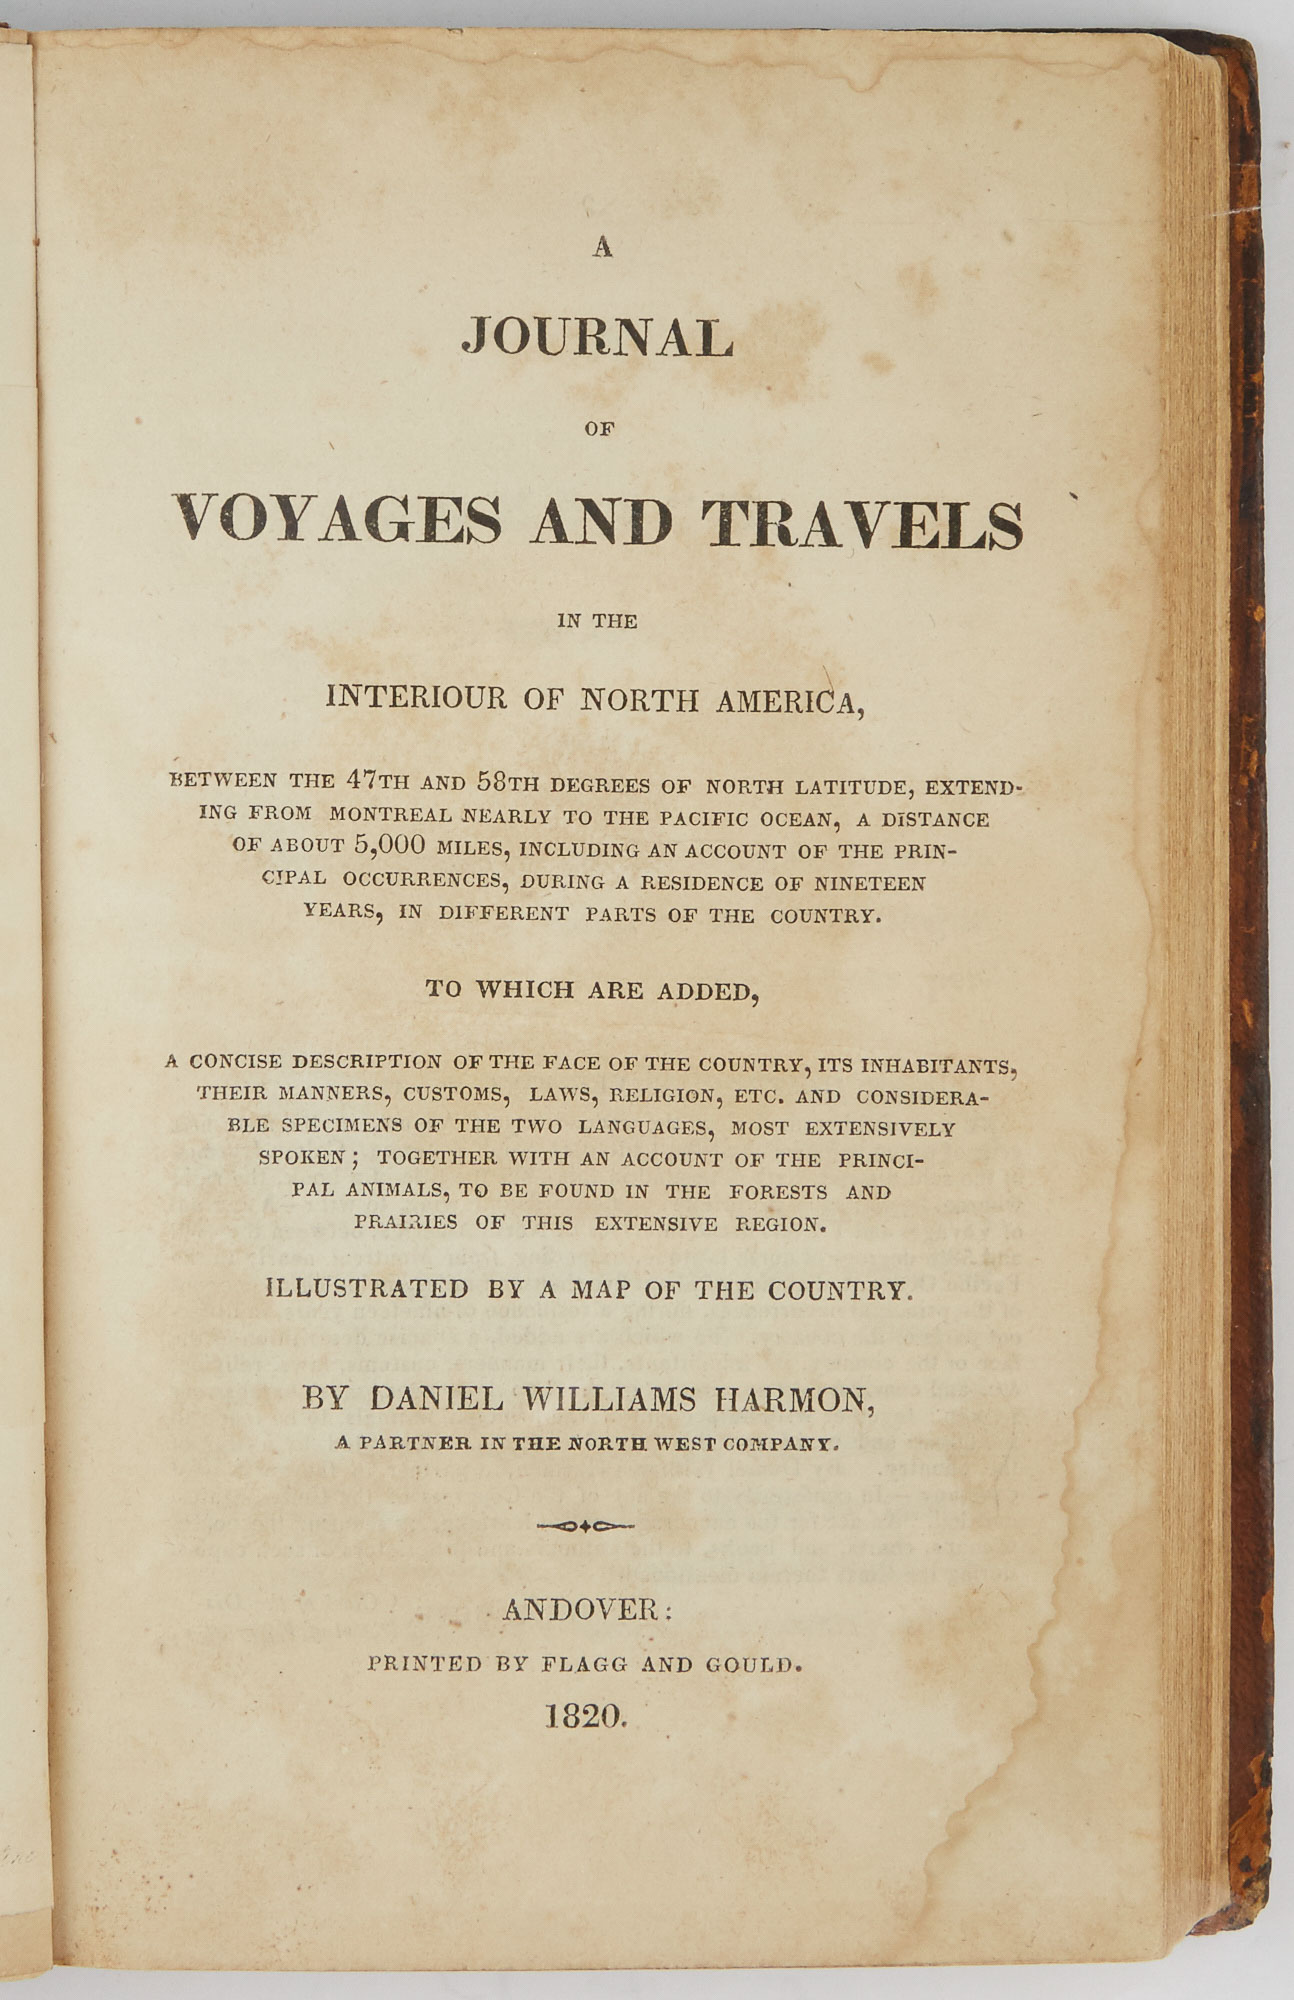 Lot image - HARMON, DANIEL WILLIAMS  Journal of Voyages and Travels in the Interiour [sic] of North America, Between the 47th and 58th Degrees of North Latitude, Extending from Montreal Nearly to the Pacific Ocean ... Illustrated by a map of the country.